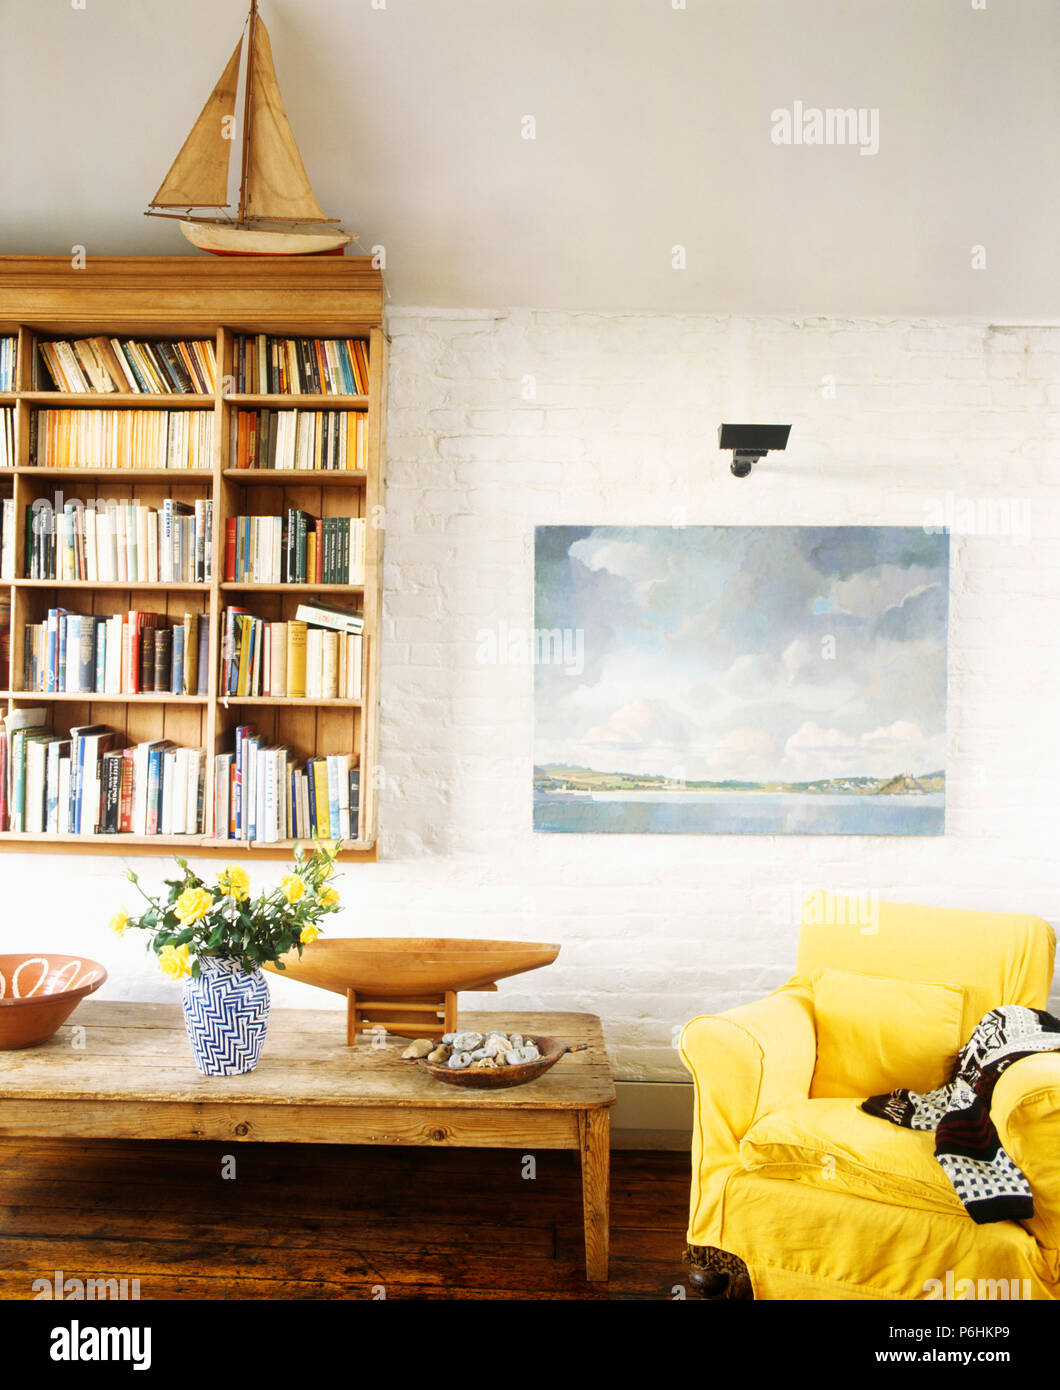 Wall Mounted Bookcase And Seascape Painting In Coastal Living Room With  Yellow Armchair And Rustic Wood Coffee Table